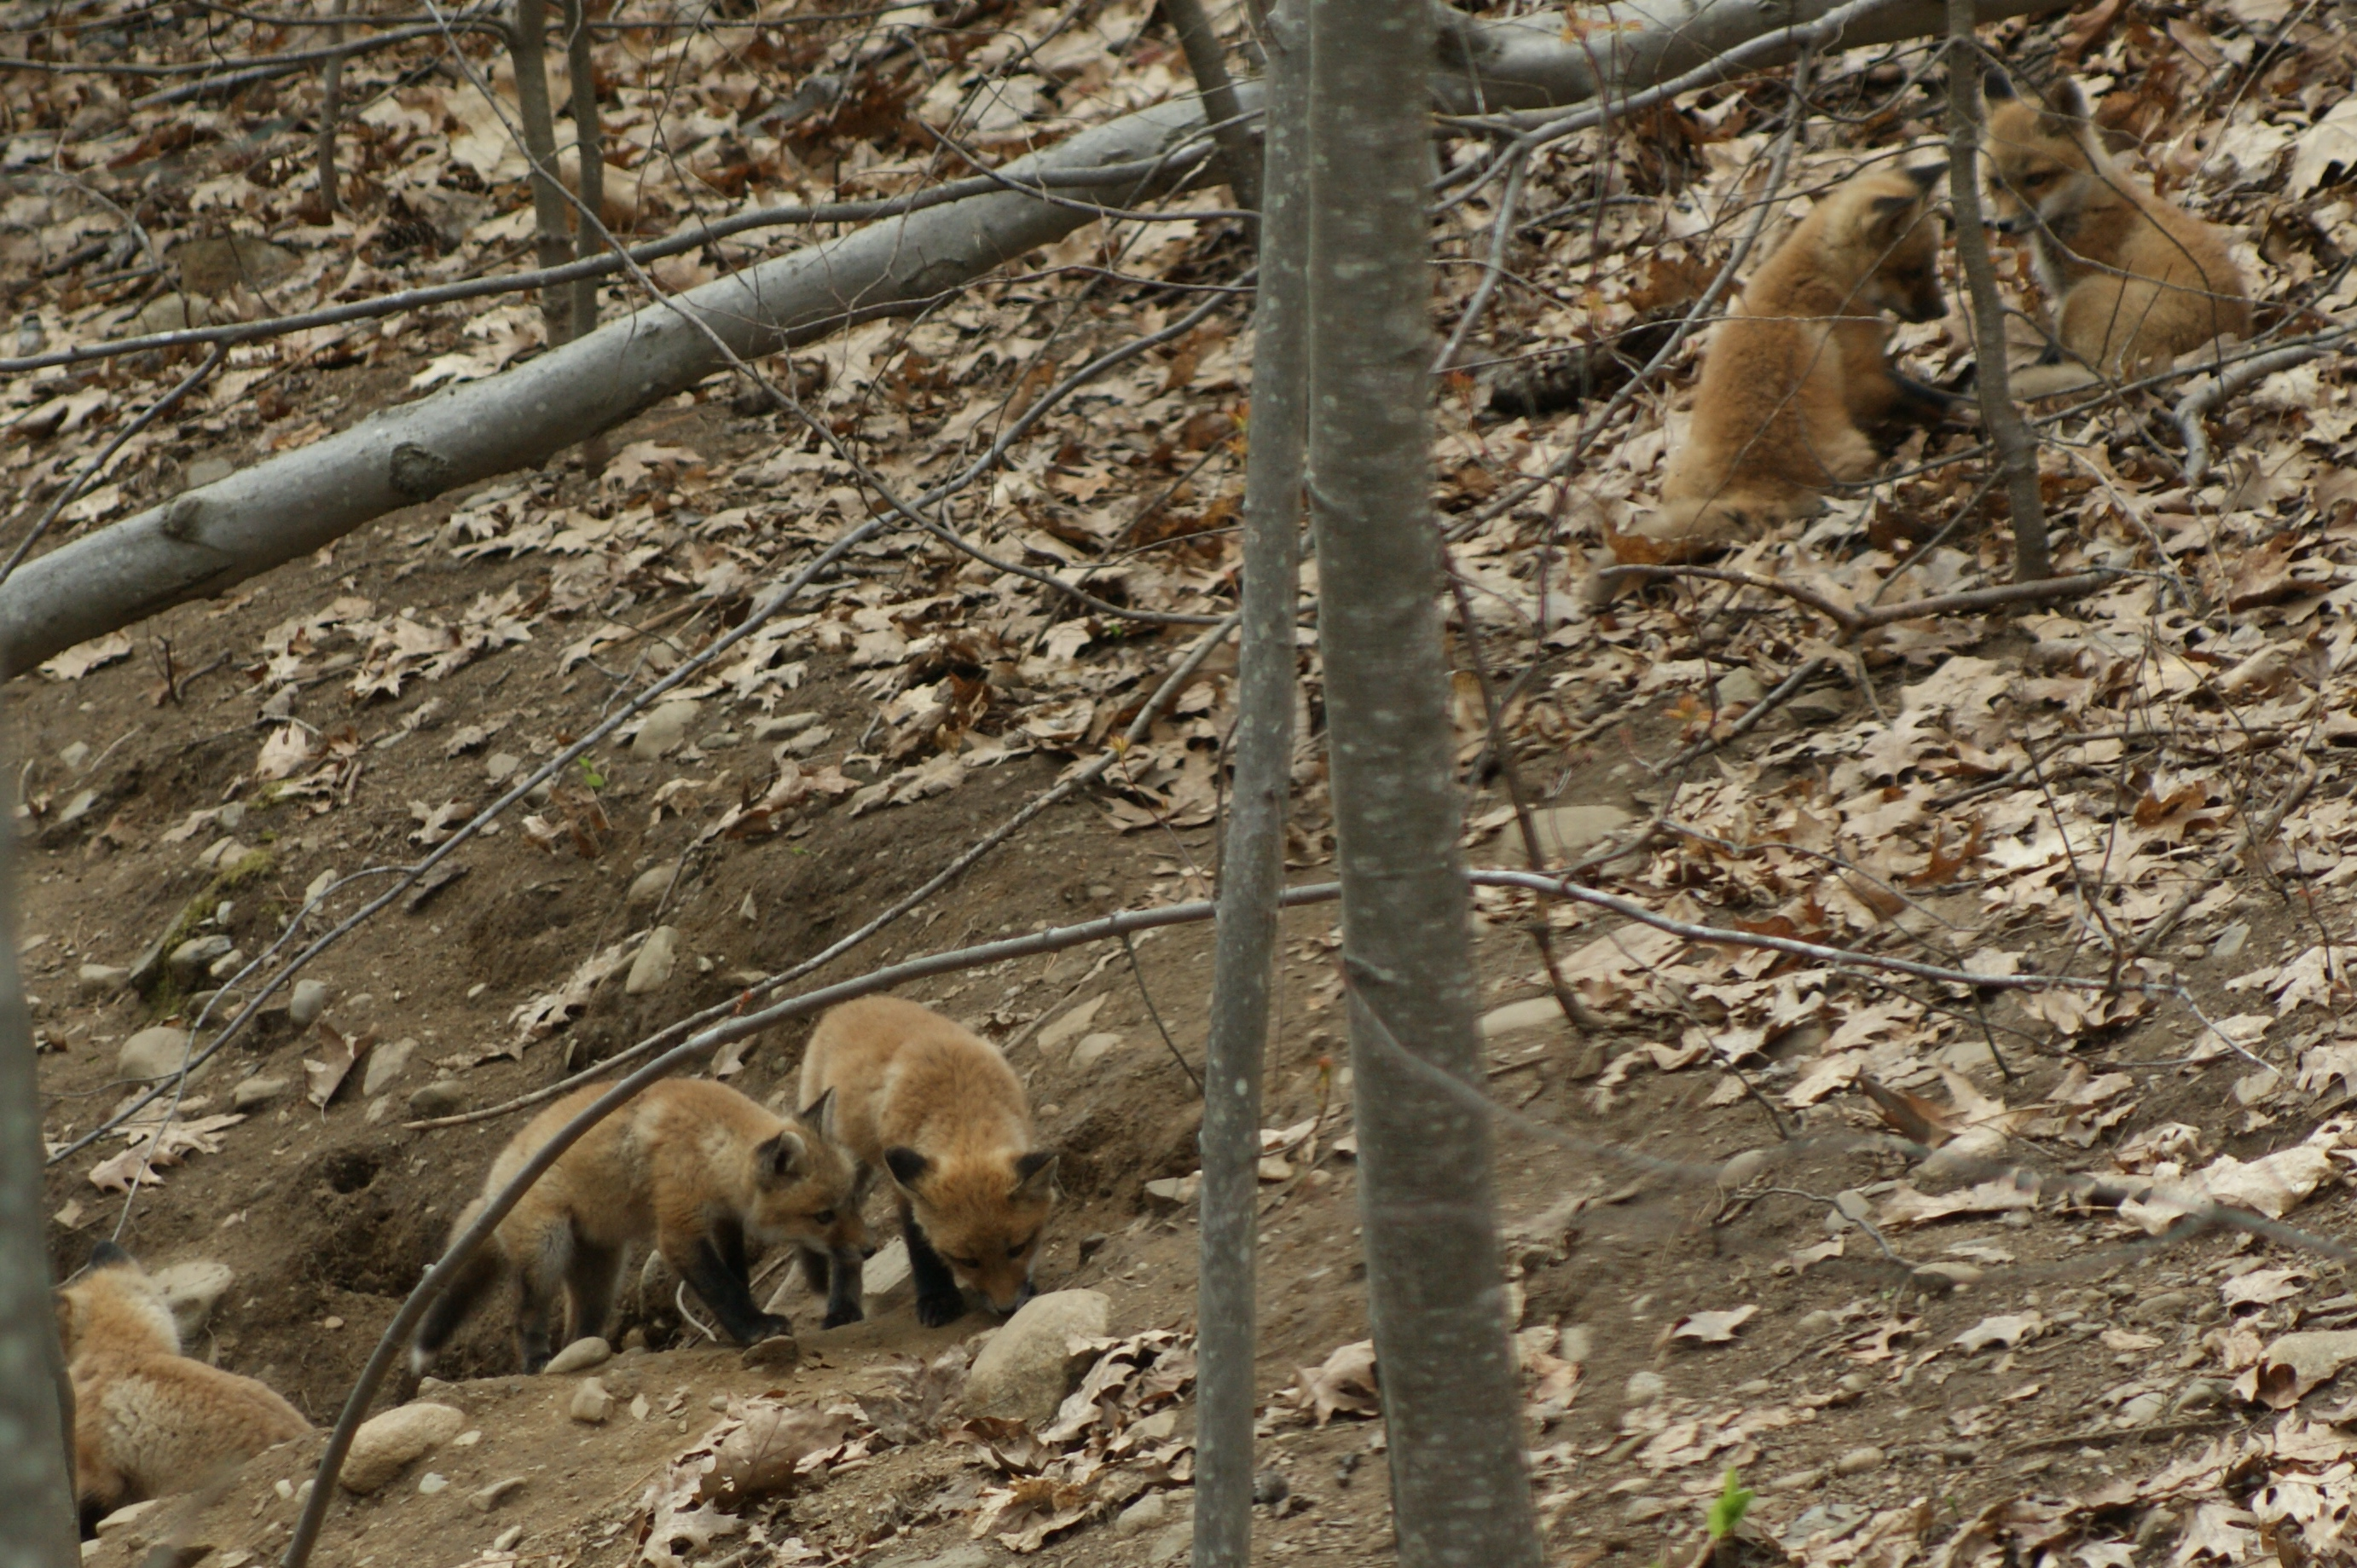 backyard wild life photo essay fox family tumblehome learning the kits play near the den s entrance when their parents are out of sight